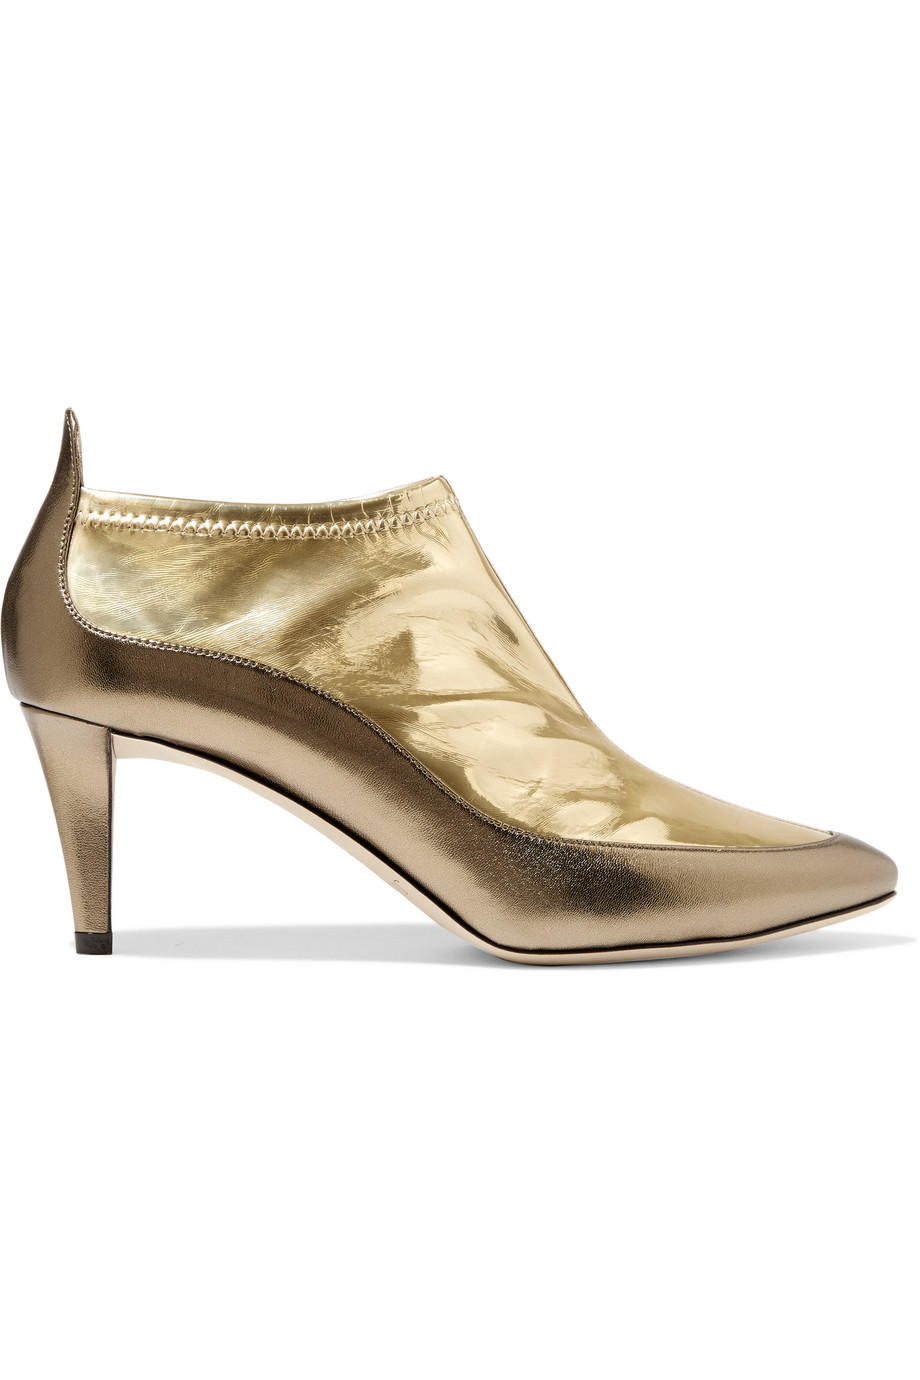 Jimmy Choo Dierdre Two-Tone Metallic PVC and Textured-Leather Ankle Boots, Gold, Women's US Size: 6.5, Size: 37